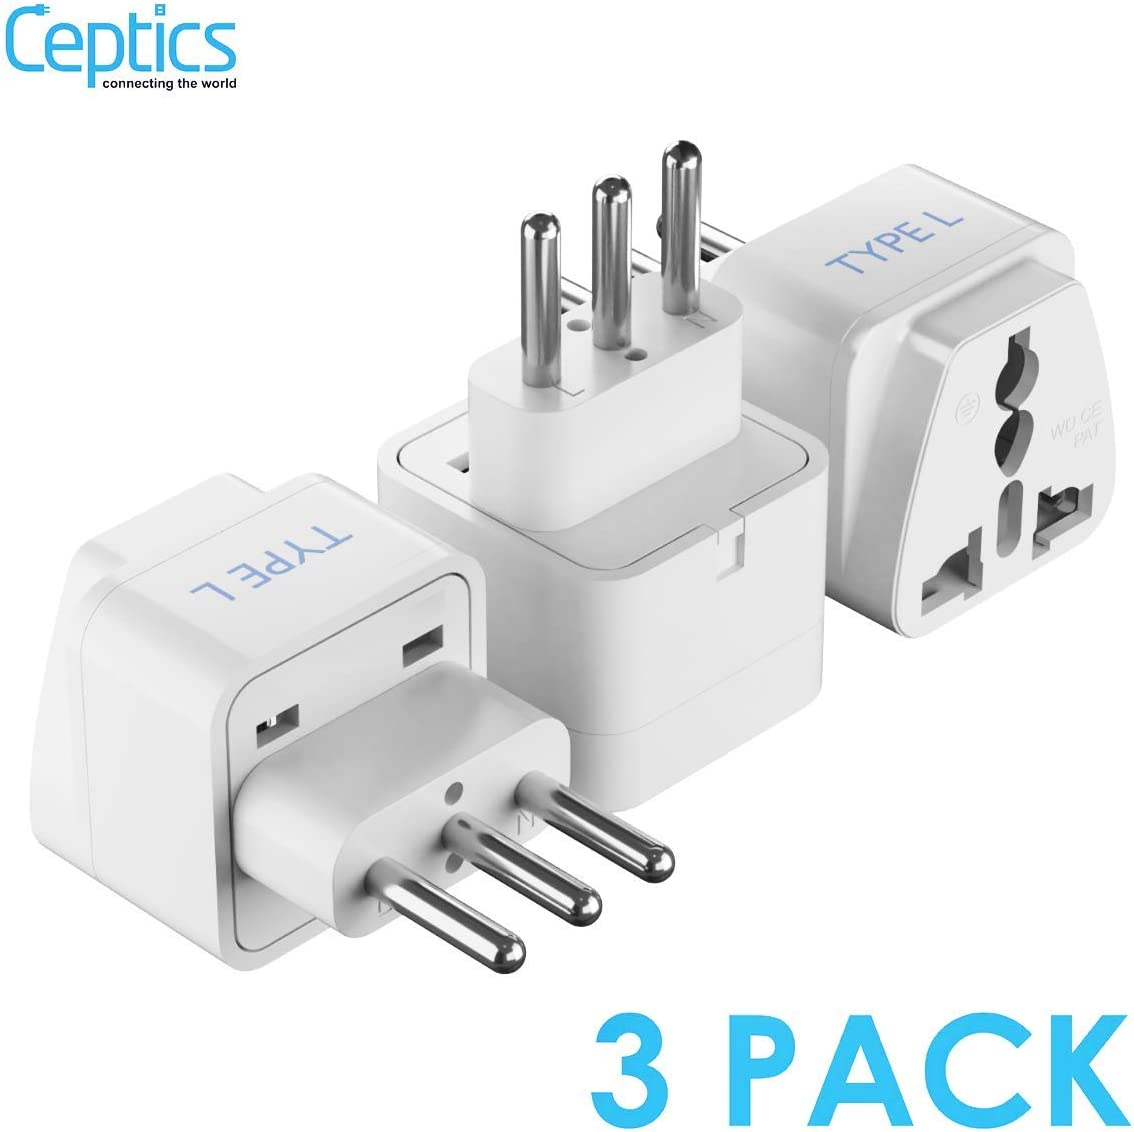 Ceptics Italy, Chile Universal Travel Plug Adapter (Type L) - Perfect for Traveling toRome - Charge your Cell Phones, Laptops, Tablets - Grounded - 3 Pack (GP-12A-3PK)